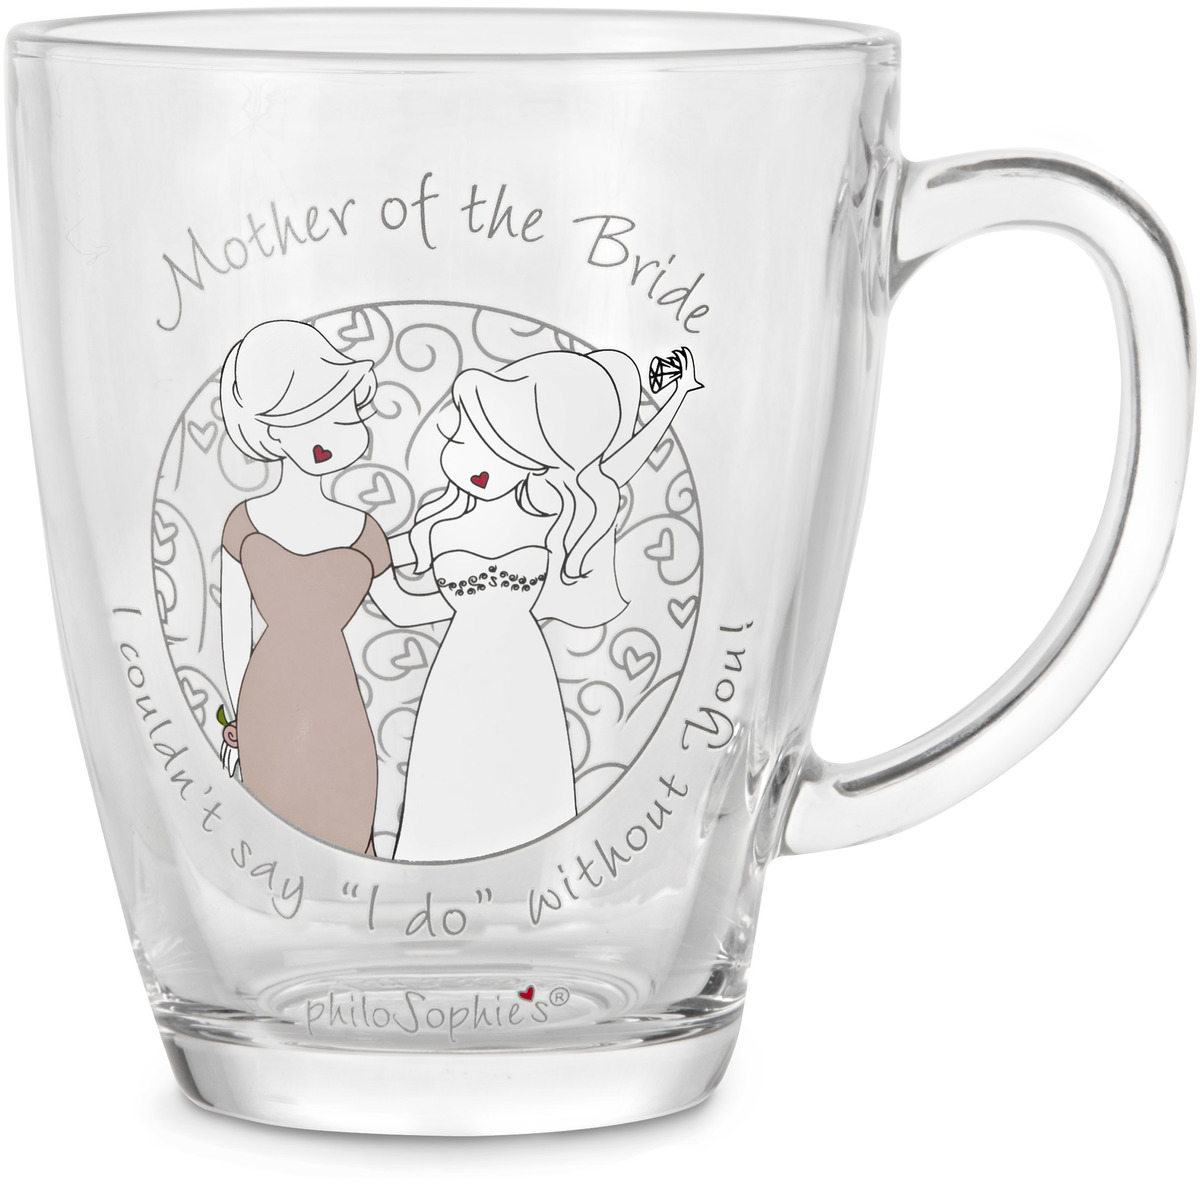 Mother of the Bride by philoSophies - Mother of the Bride - 12.5oz Glass Cup